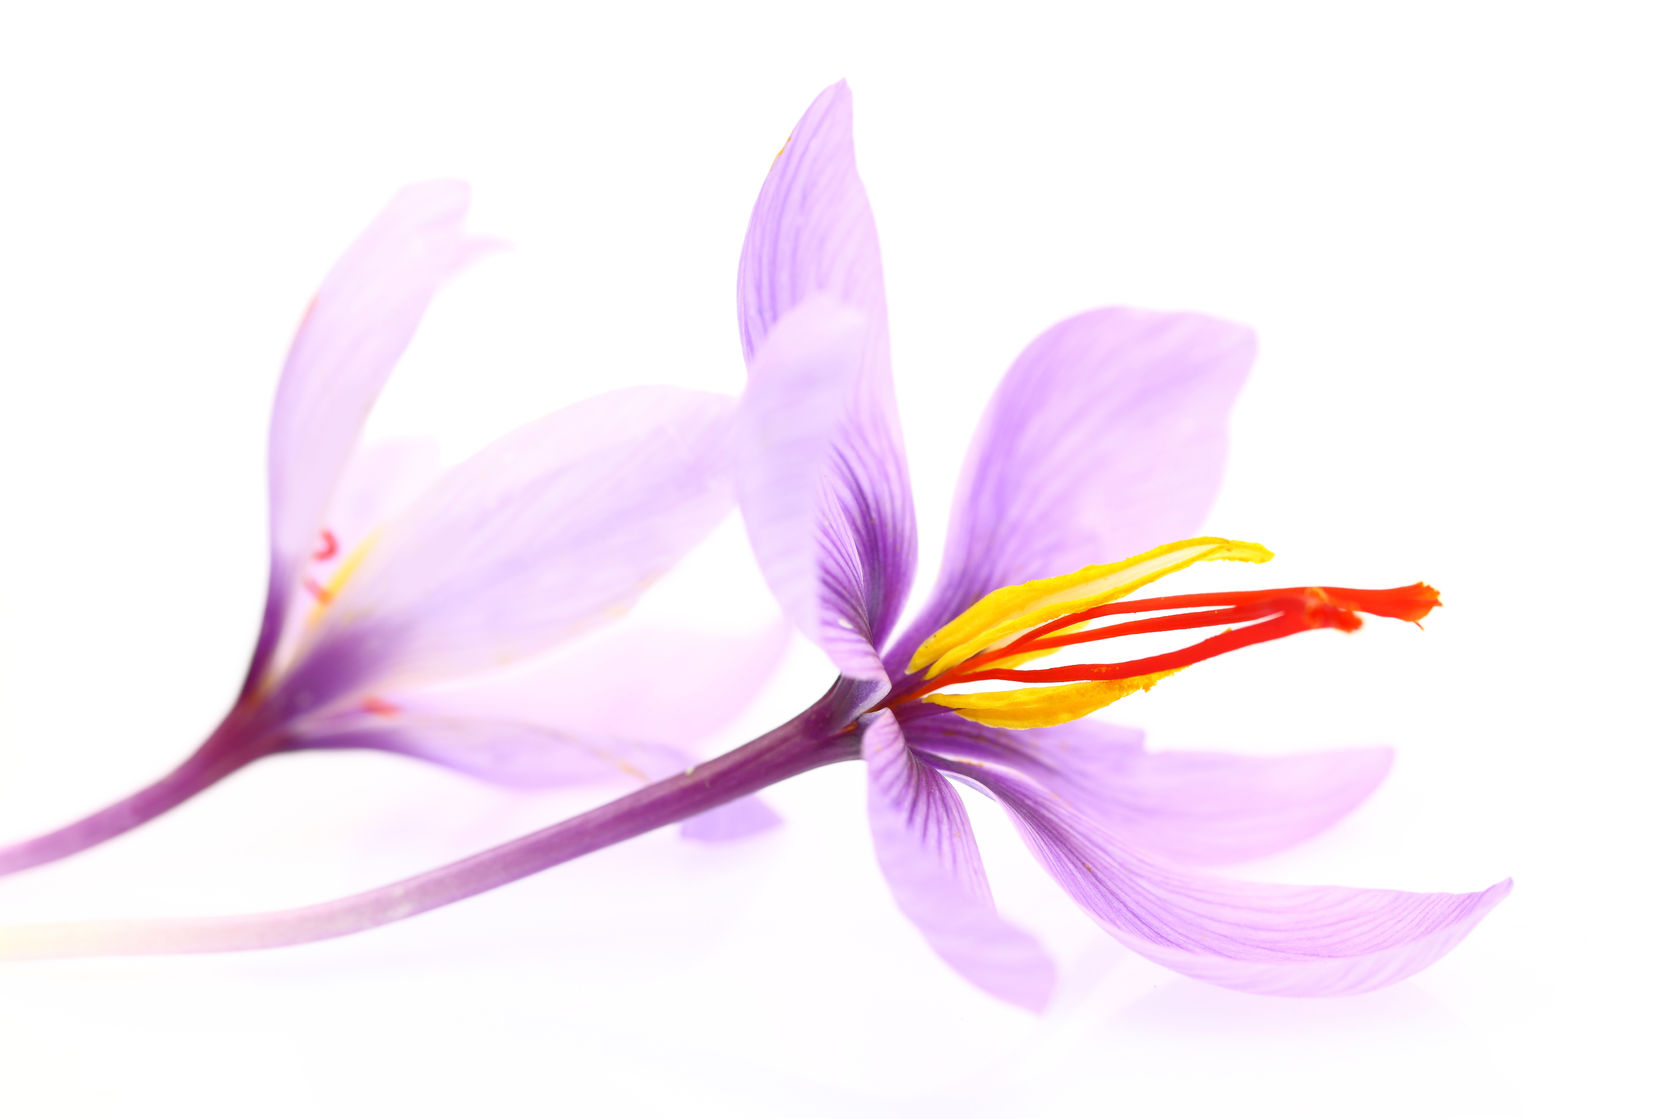 saffron relieves hot flashes and depression in menopausal women